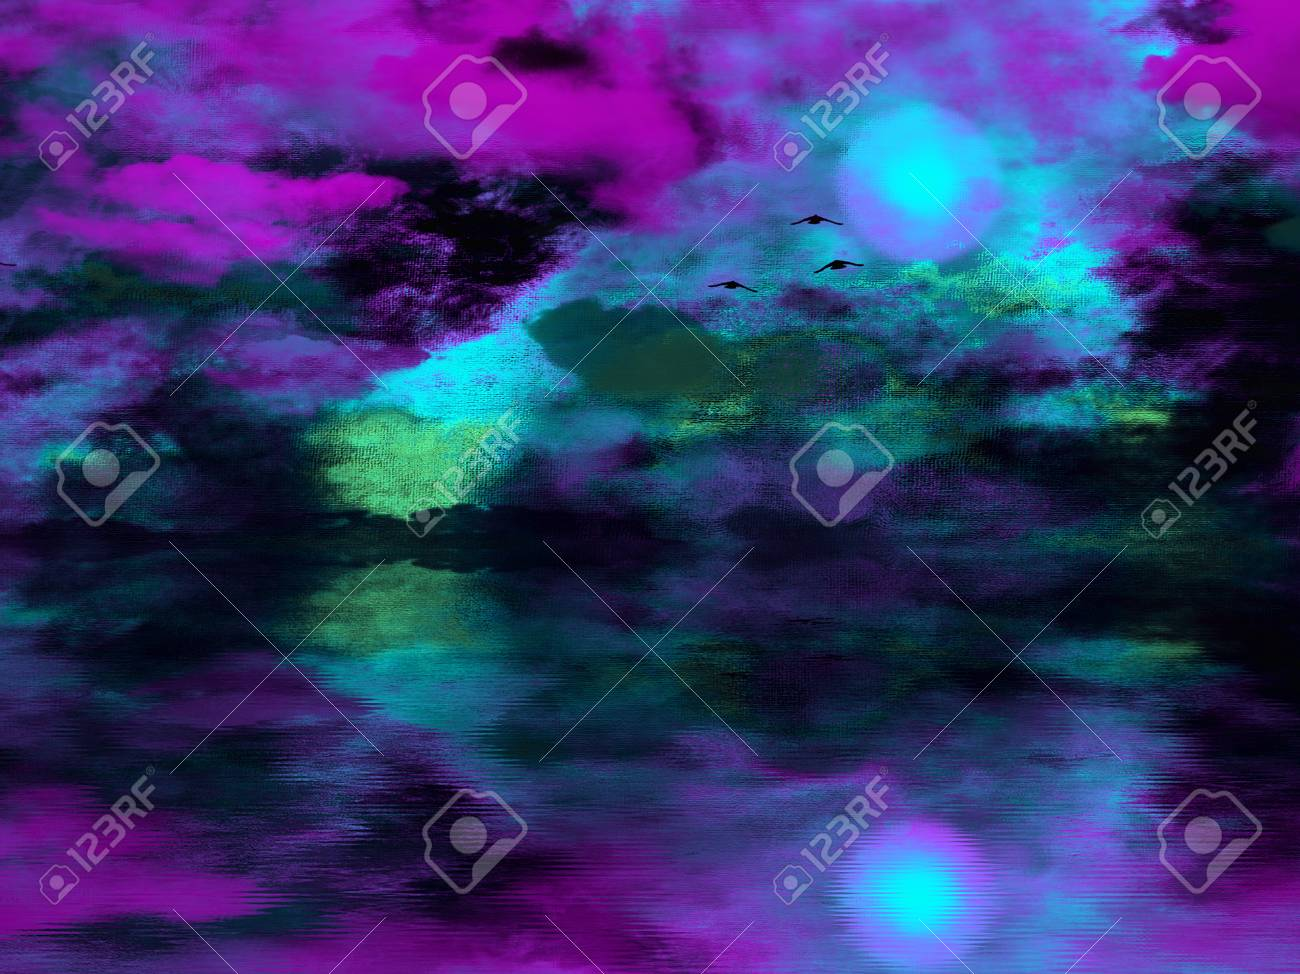 Abstract Painting Purple Sunset Over Water 3d Rendering Stock Photo Picture And Royalty Free Image Image 91043569